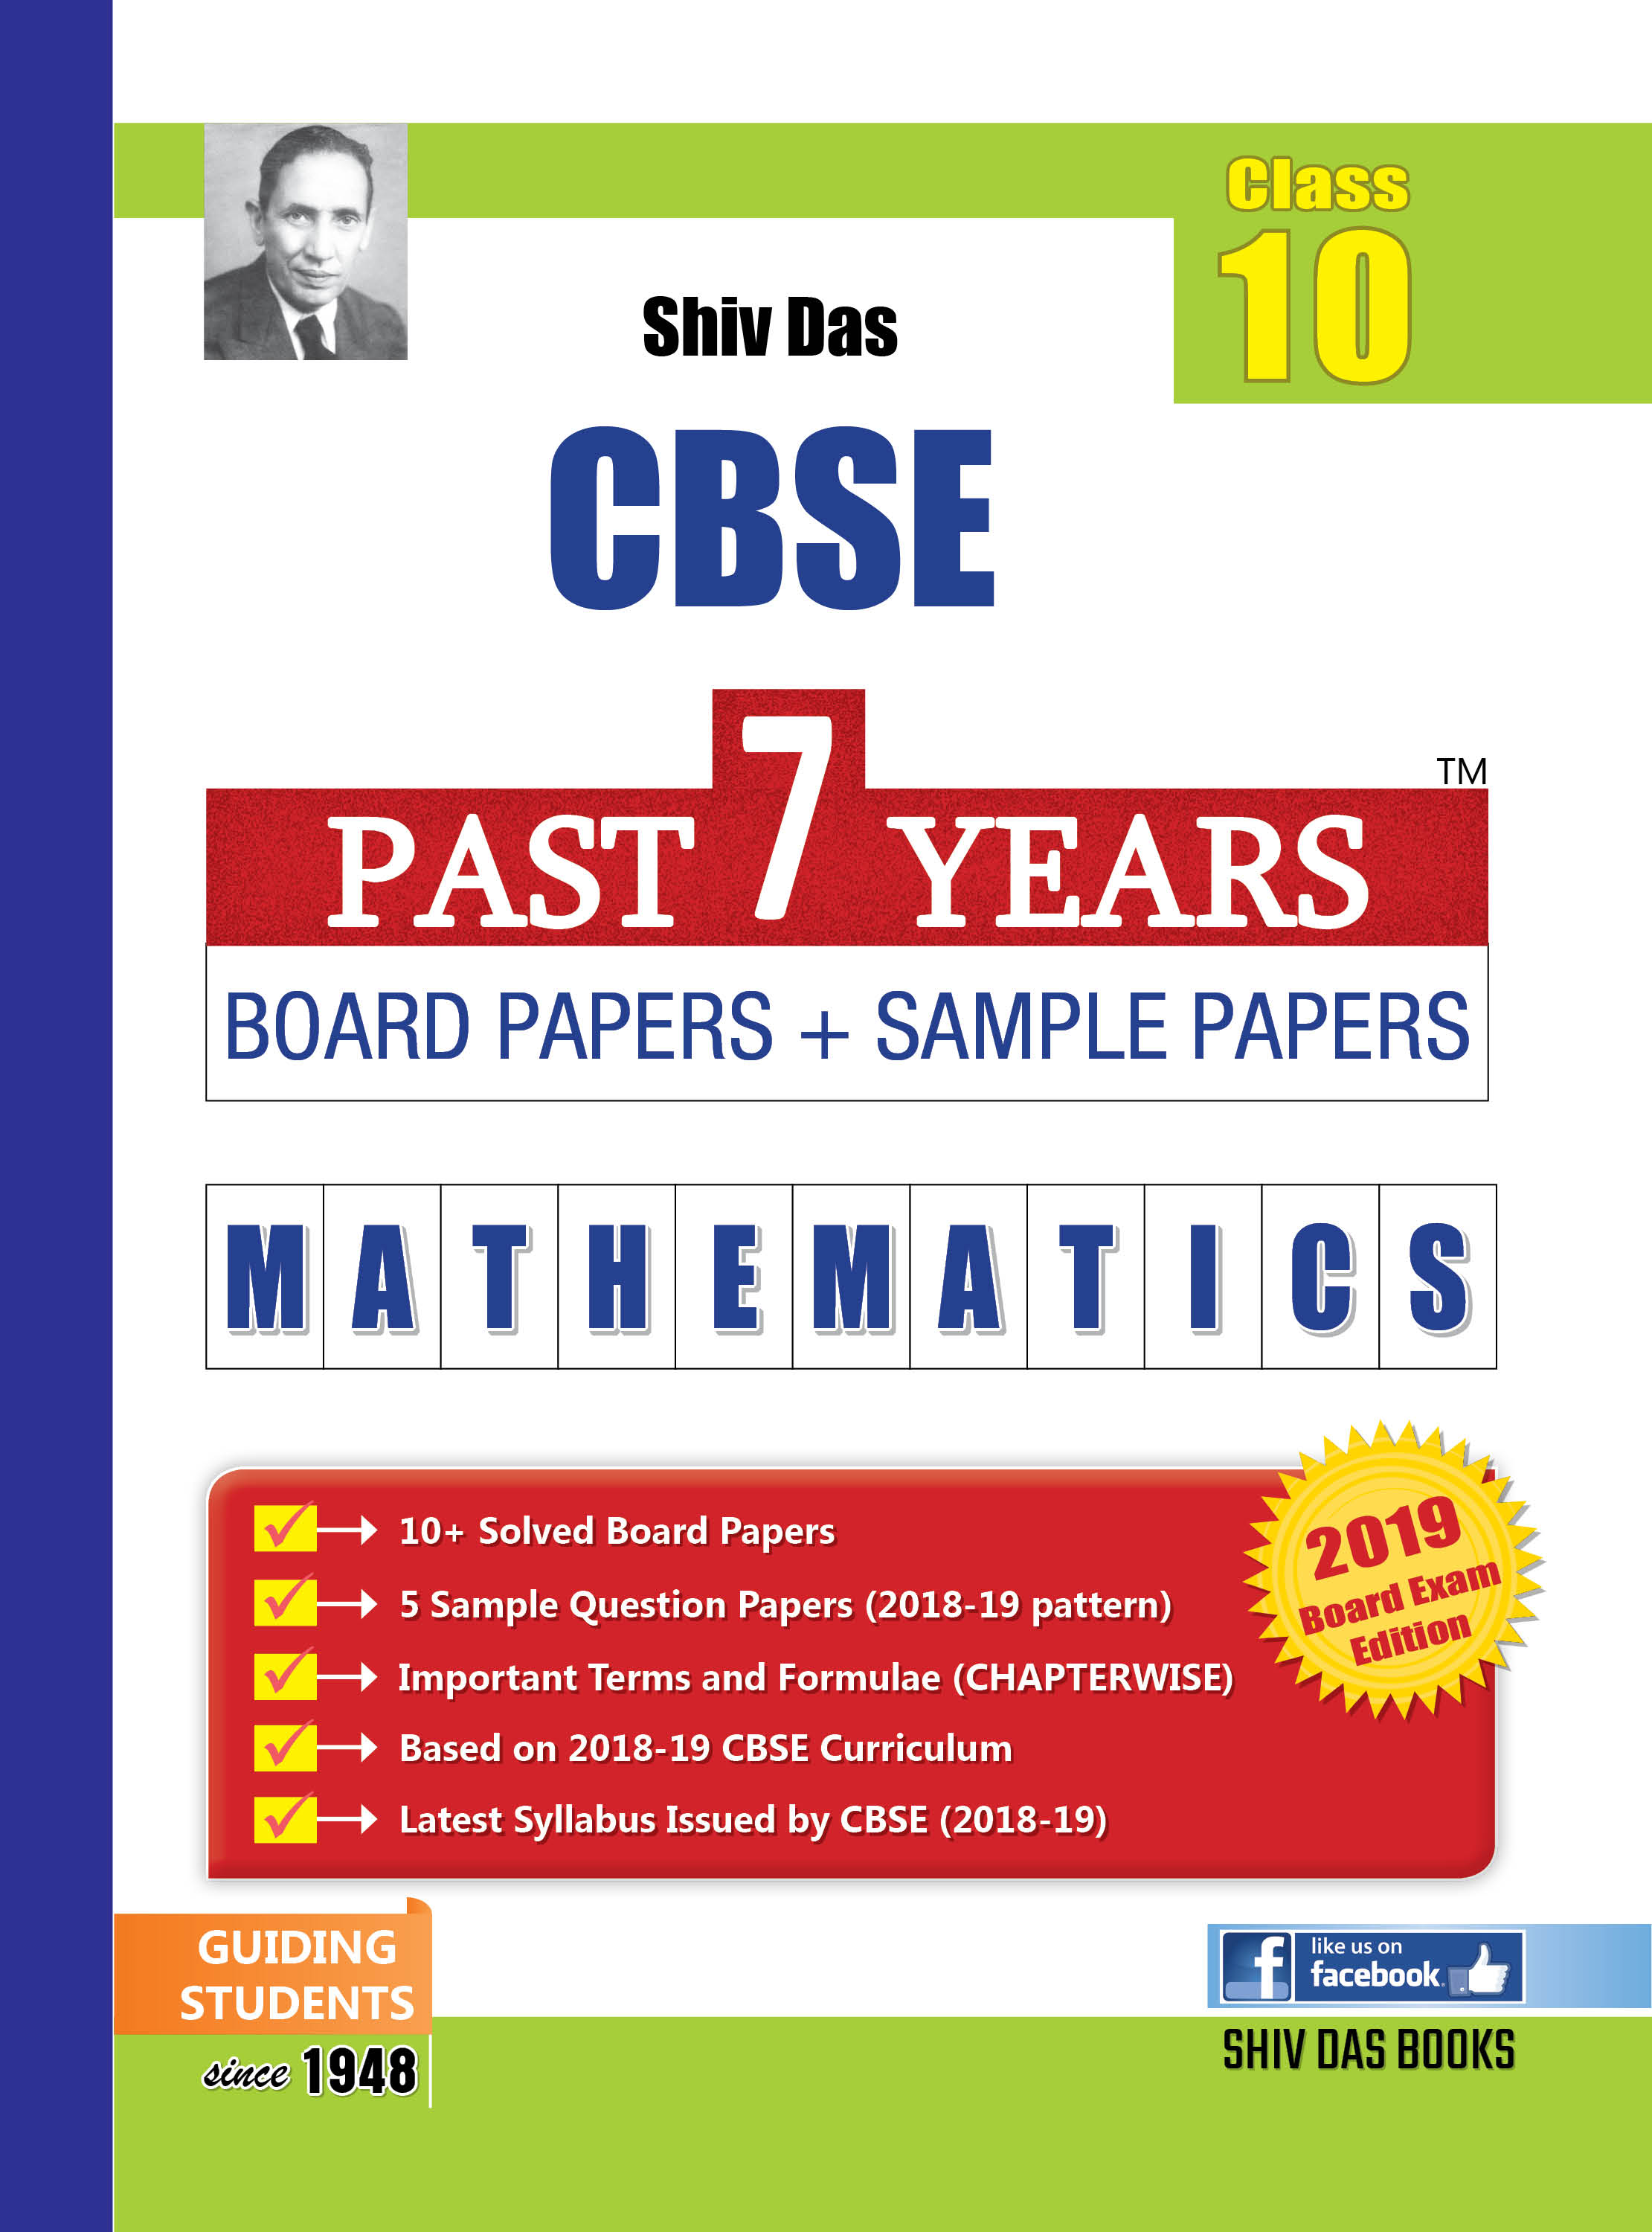 CBSE Past 7 Years Solved Board Papers+Sample Papers for Class 10 Maths (2019 Board Exam Edition)